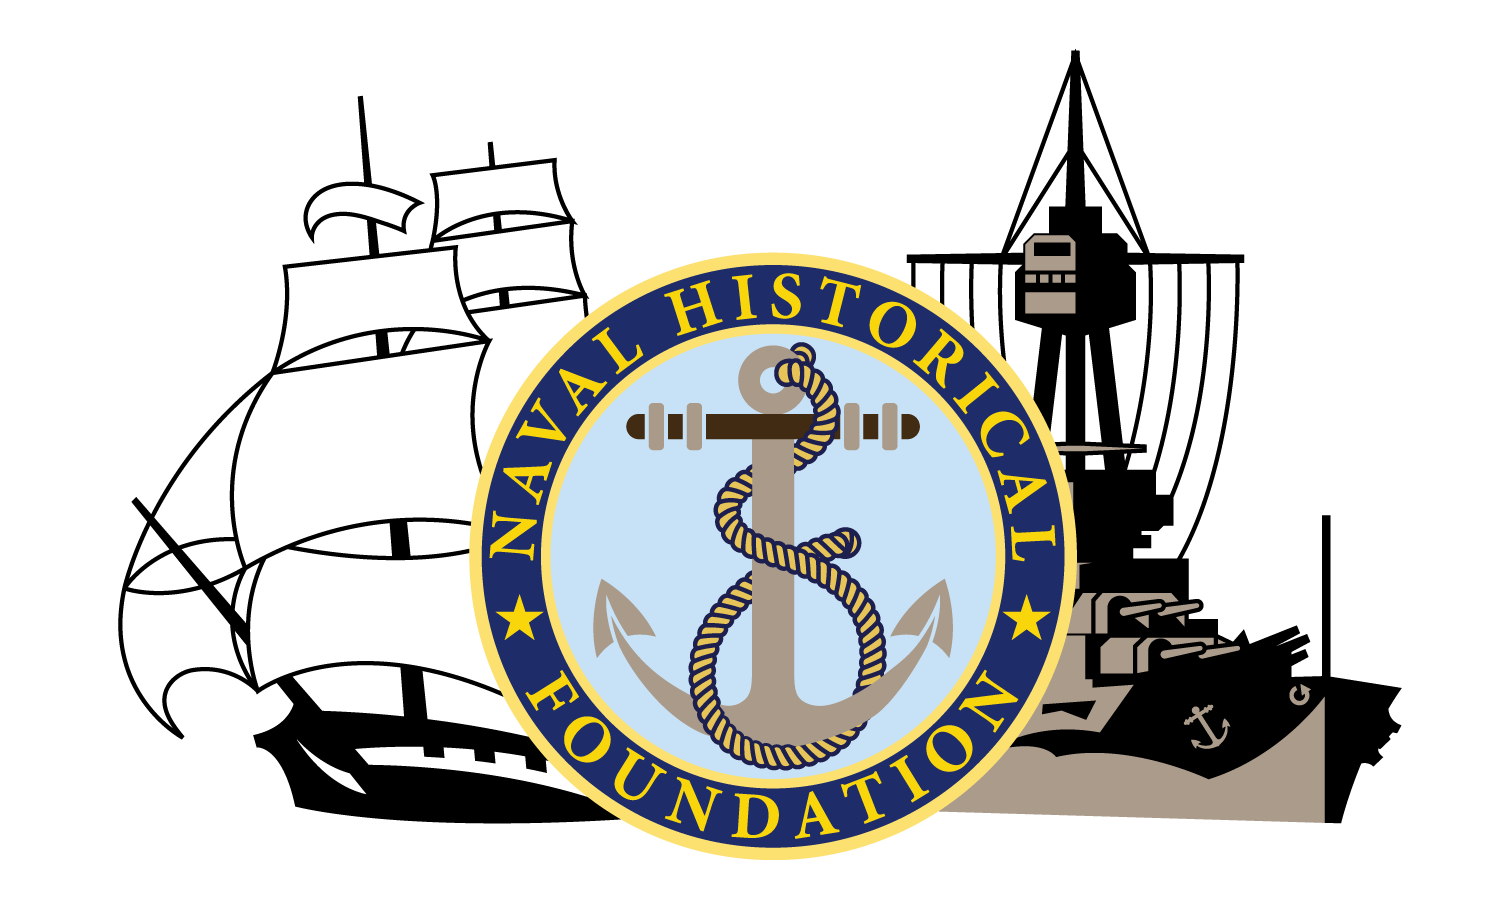 History clipart historical document. Naval foundation mission the